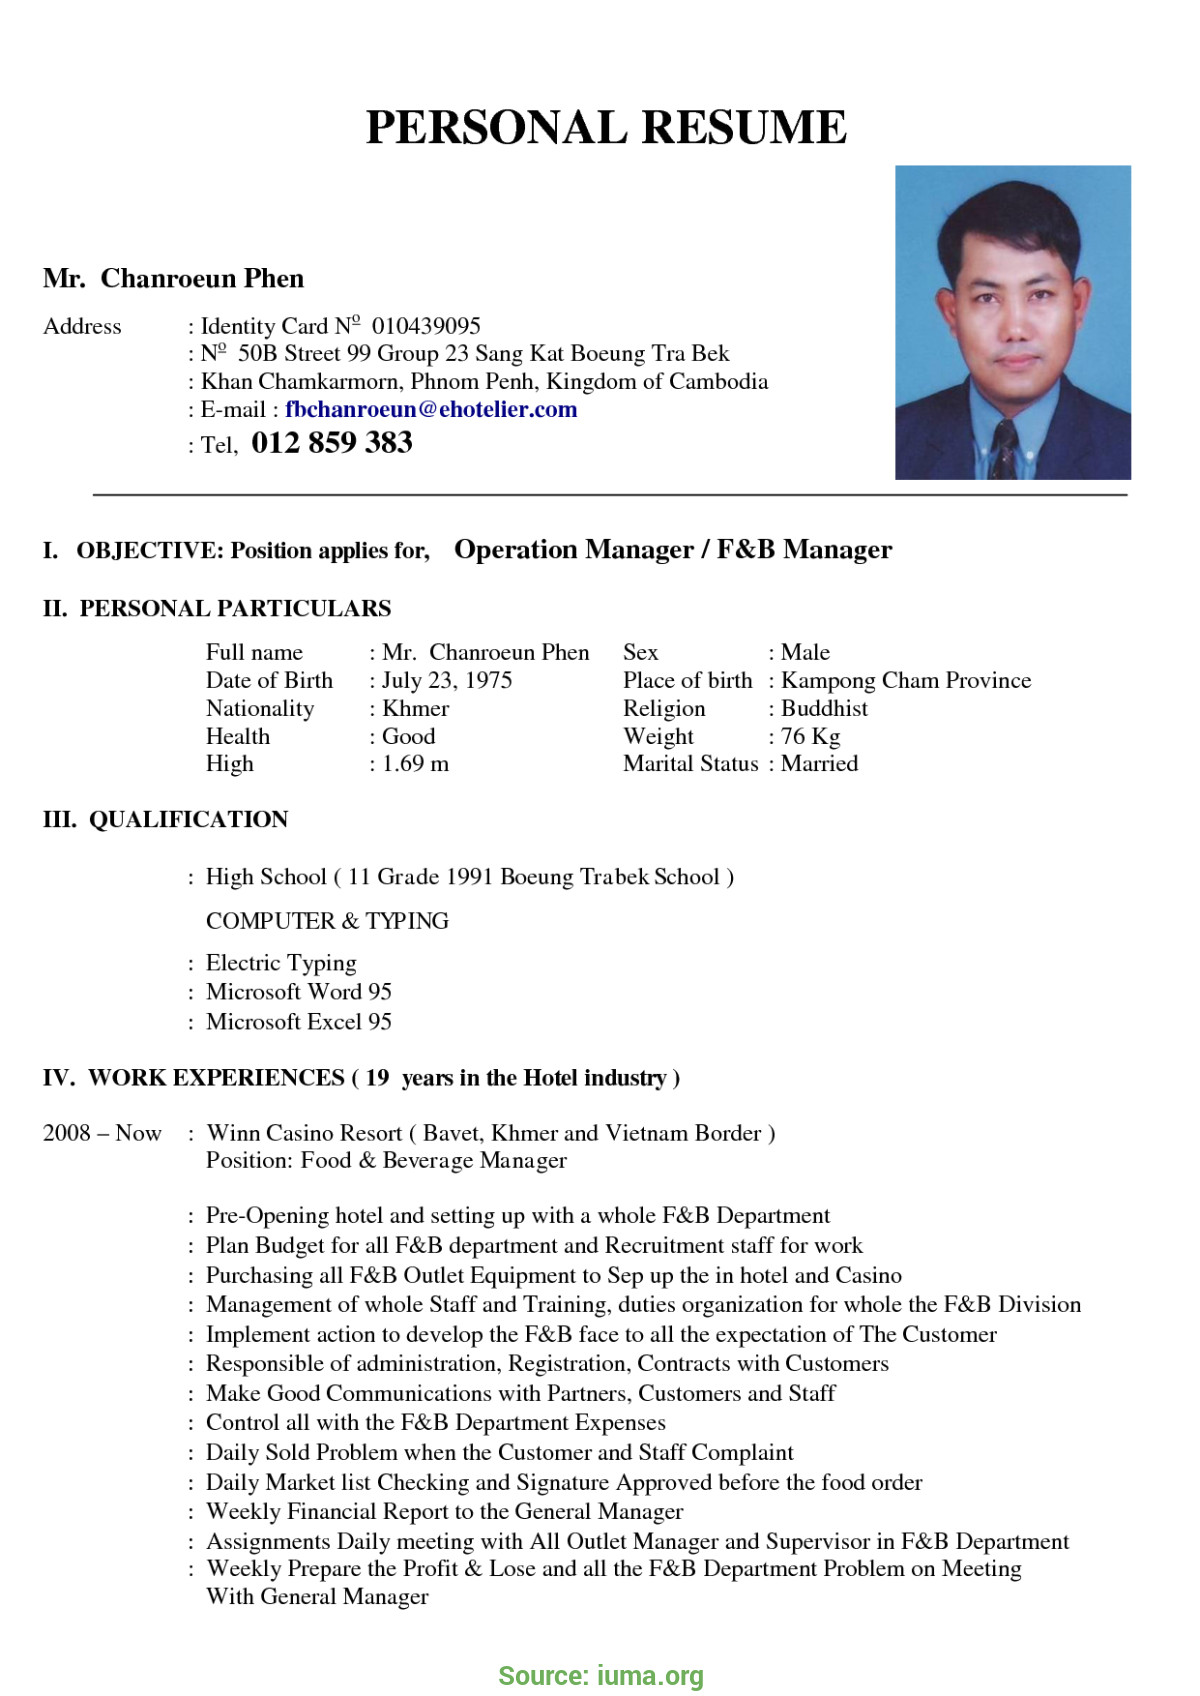 top sample career objective in resume for hotel and restaurant management job resume free restaurant manager resume examples templat